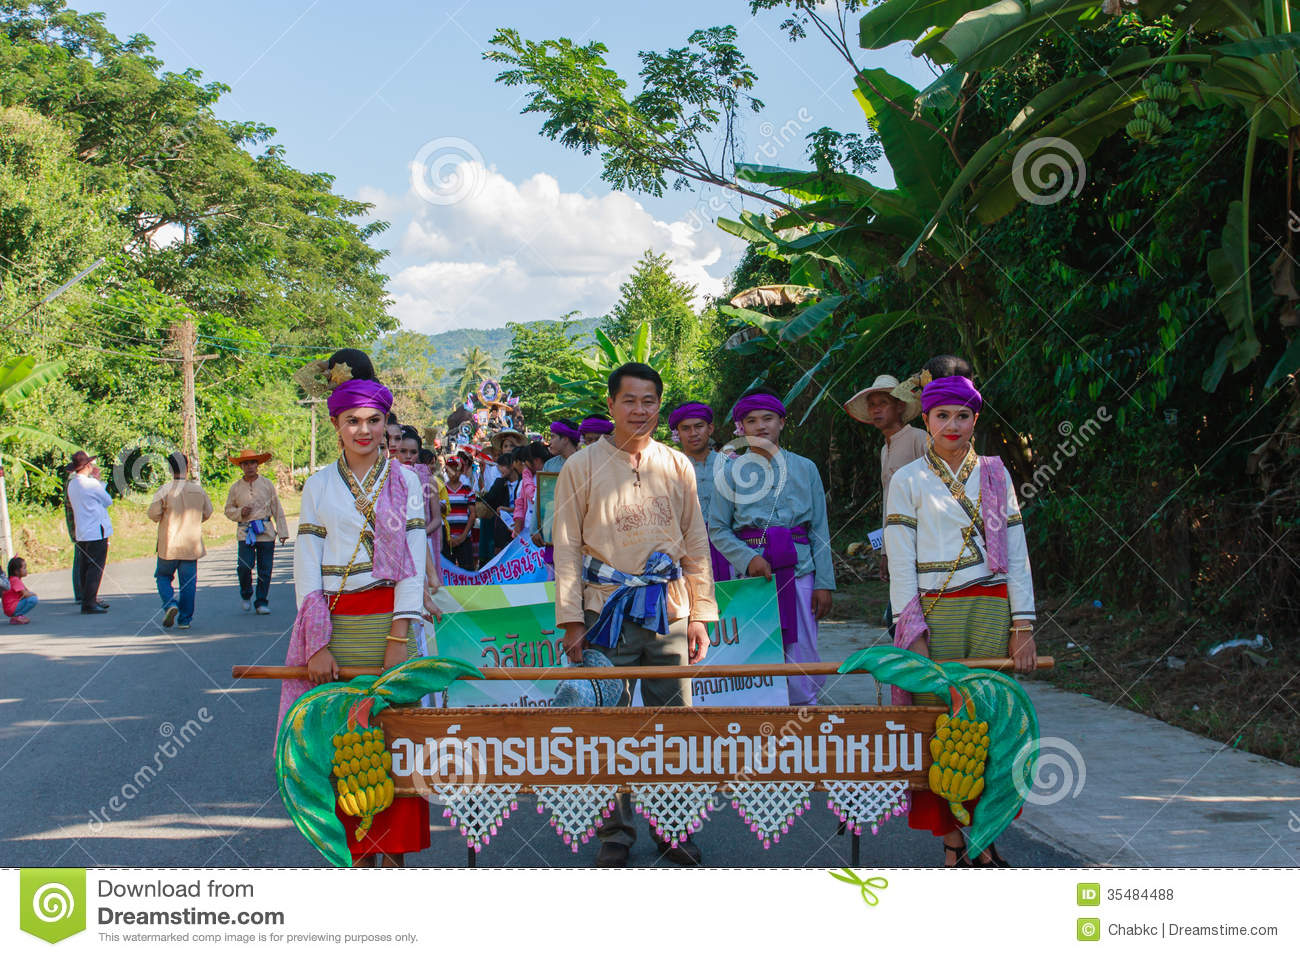 Uttaradit Thailand  city pictures gallery : ... Thapla Amphoe Uttaradit, 23 November 2013 In Uttaradit, Thailand